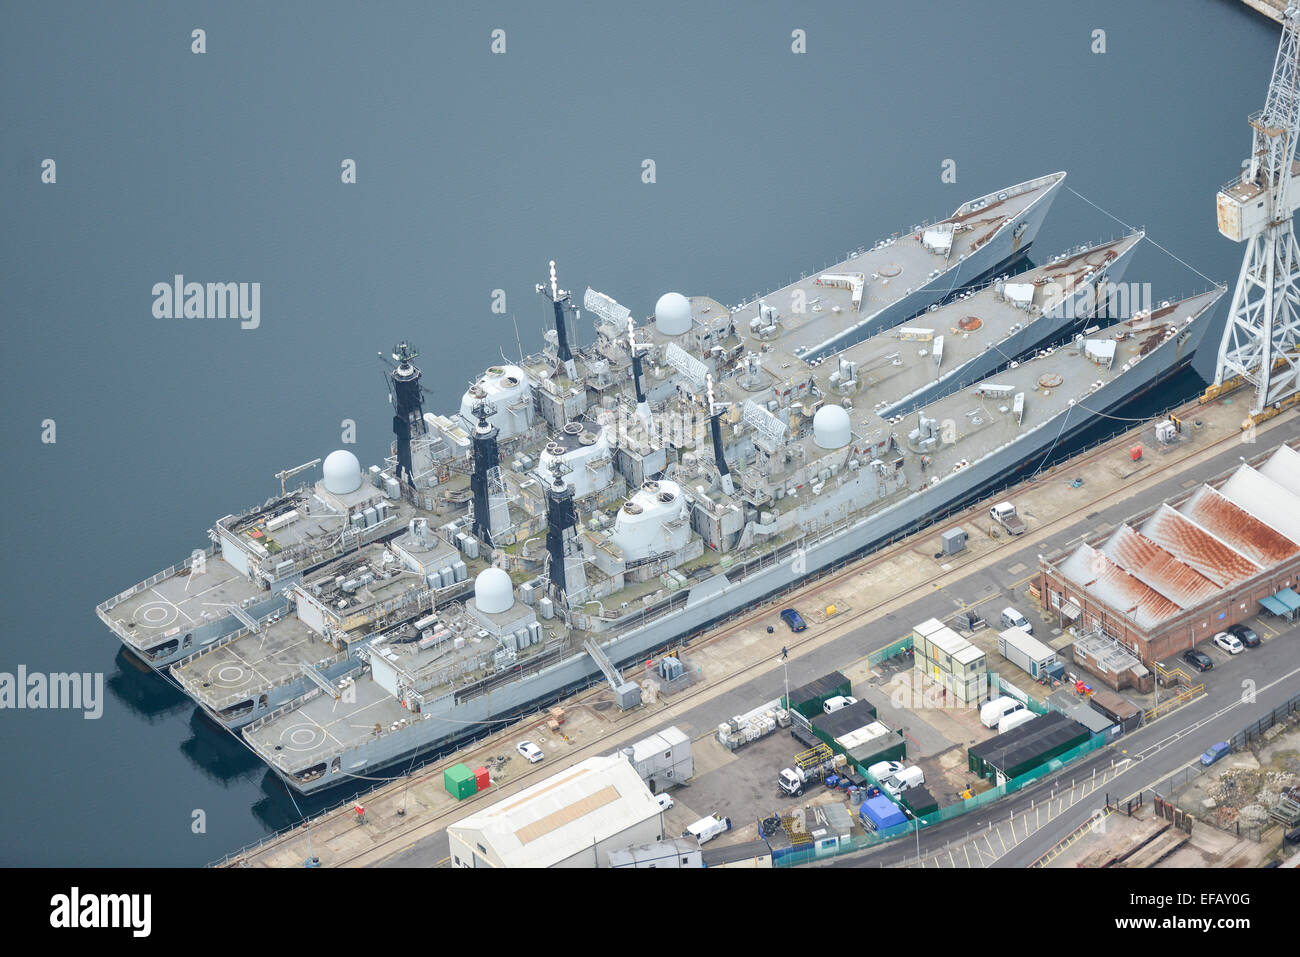 An aerial view of Royal Navy warships berthed at HMNB Portsmouth - Stock Image